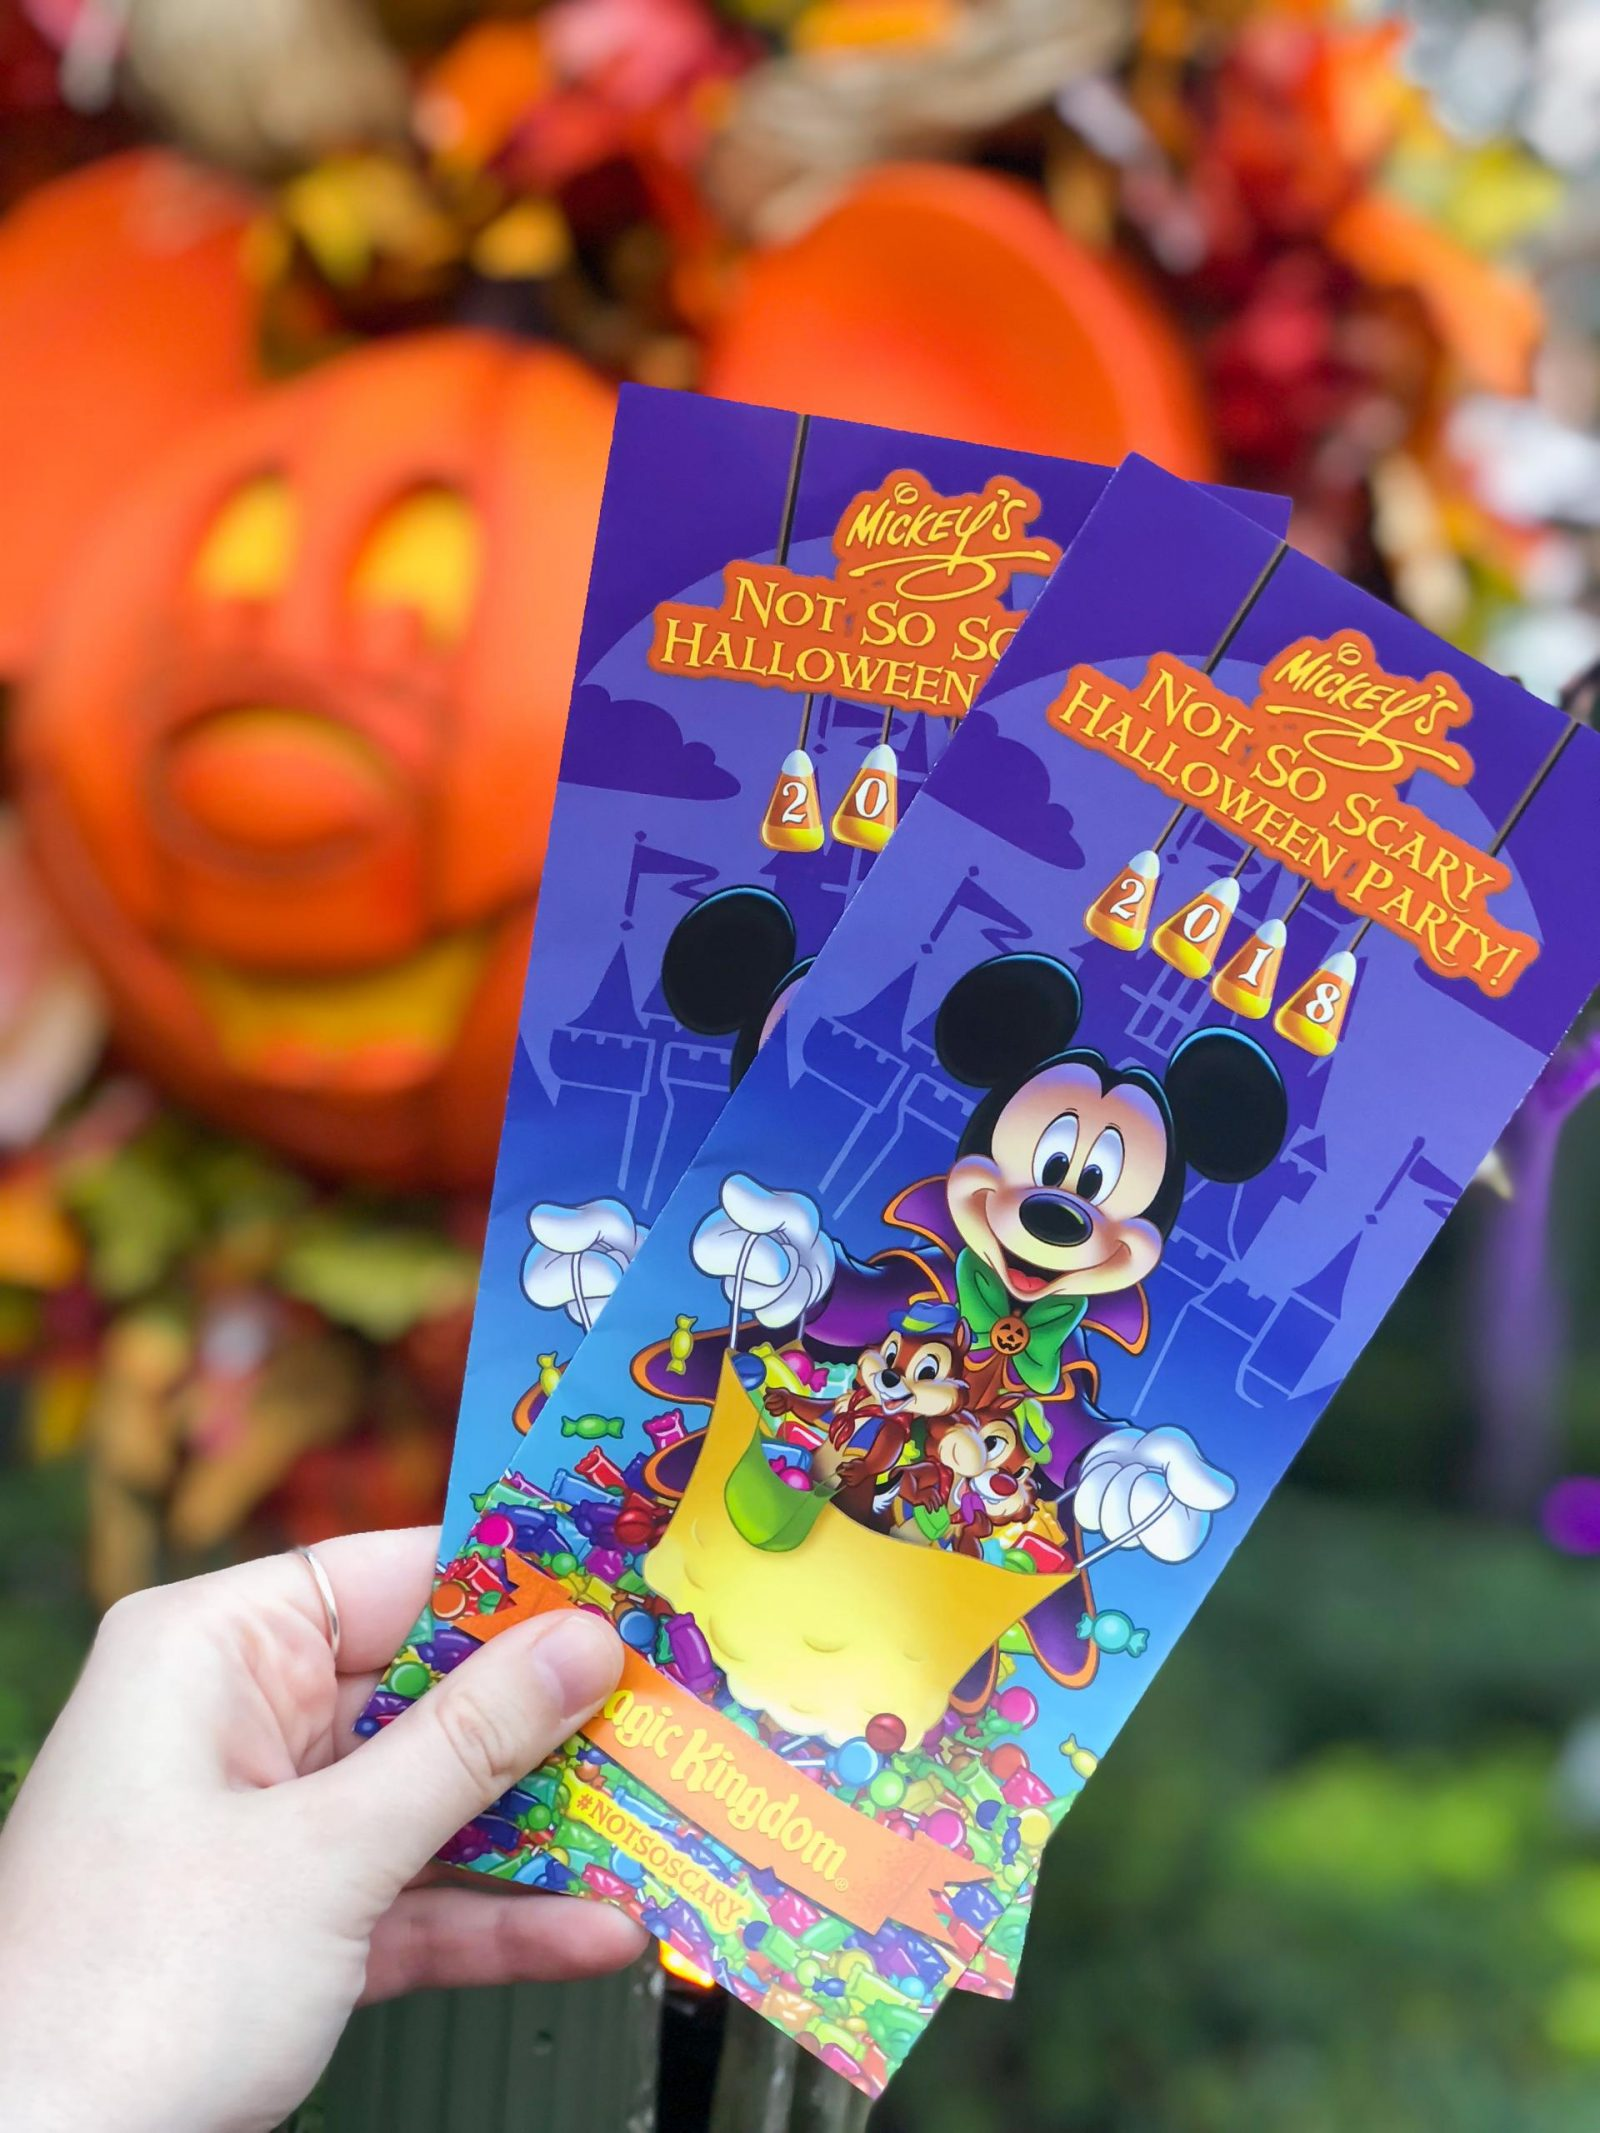 Mickey's Not So Scary Halloween Party Leaflet